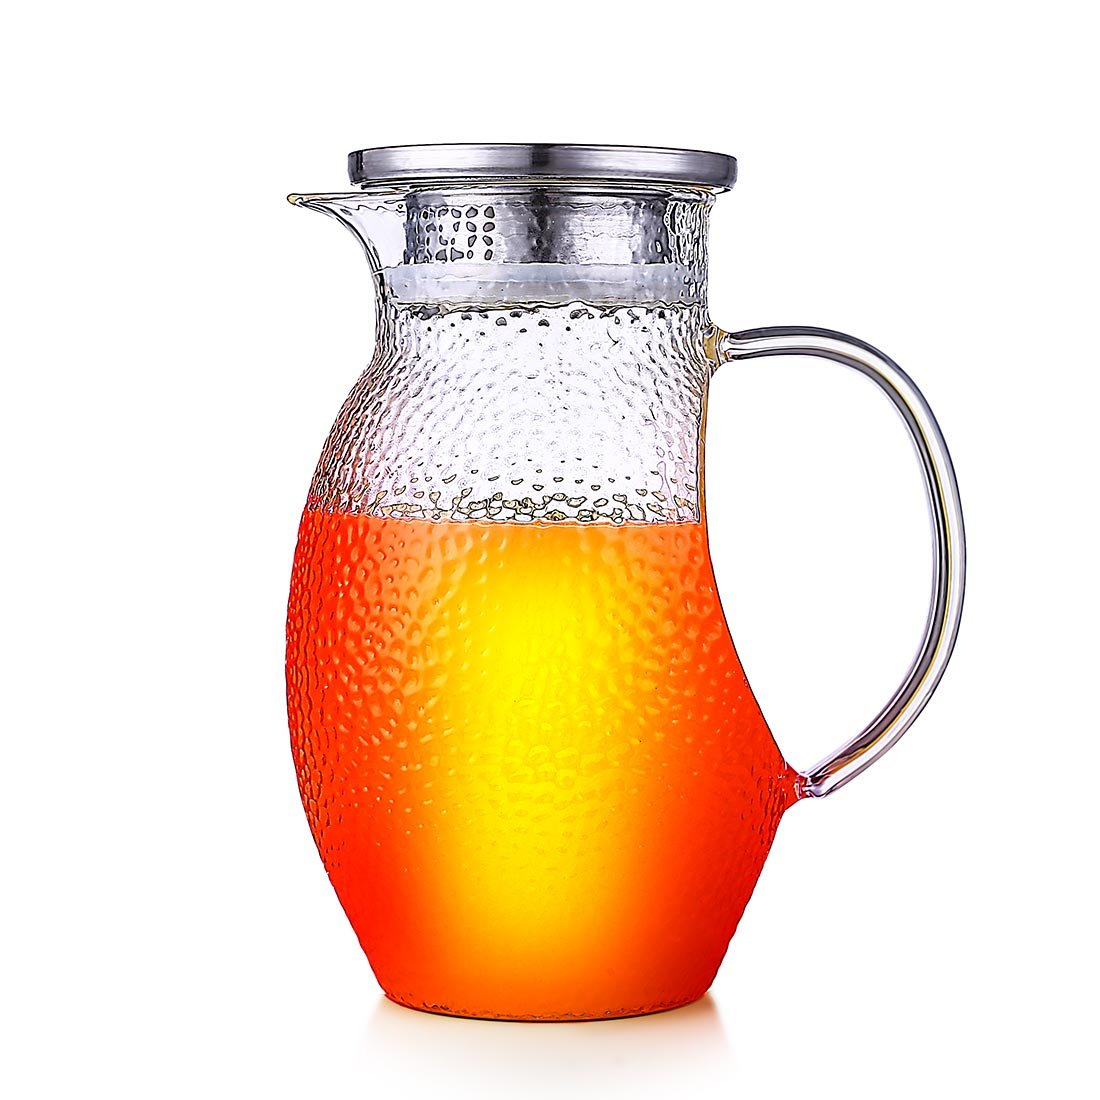 ONEISALL 44OZ Glass Pitcher with Lid,Borosilicate Glass Jug Carafe with Stainless Steel Infuser for Ice Tea, Juice, Cold Brew, Cold/Hot Water, ect.